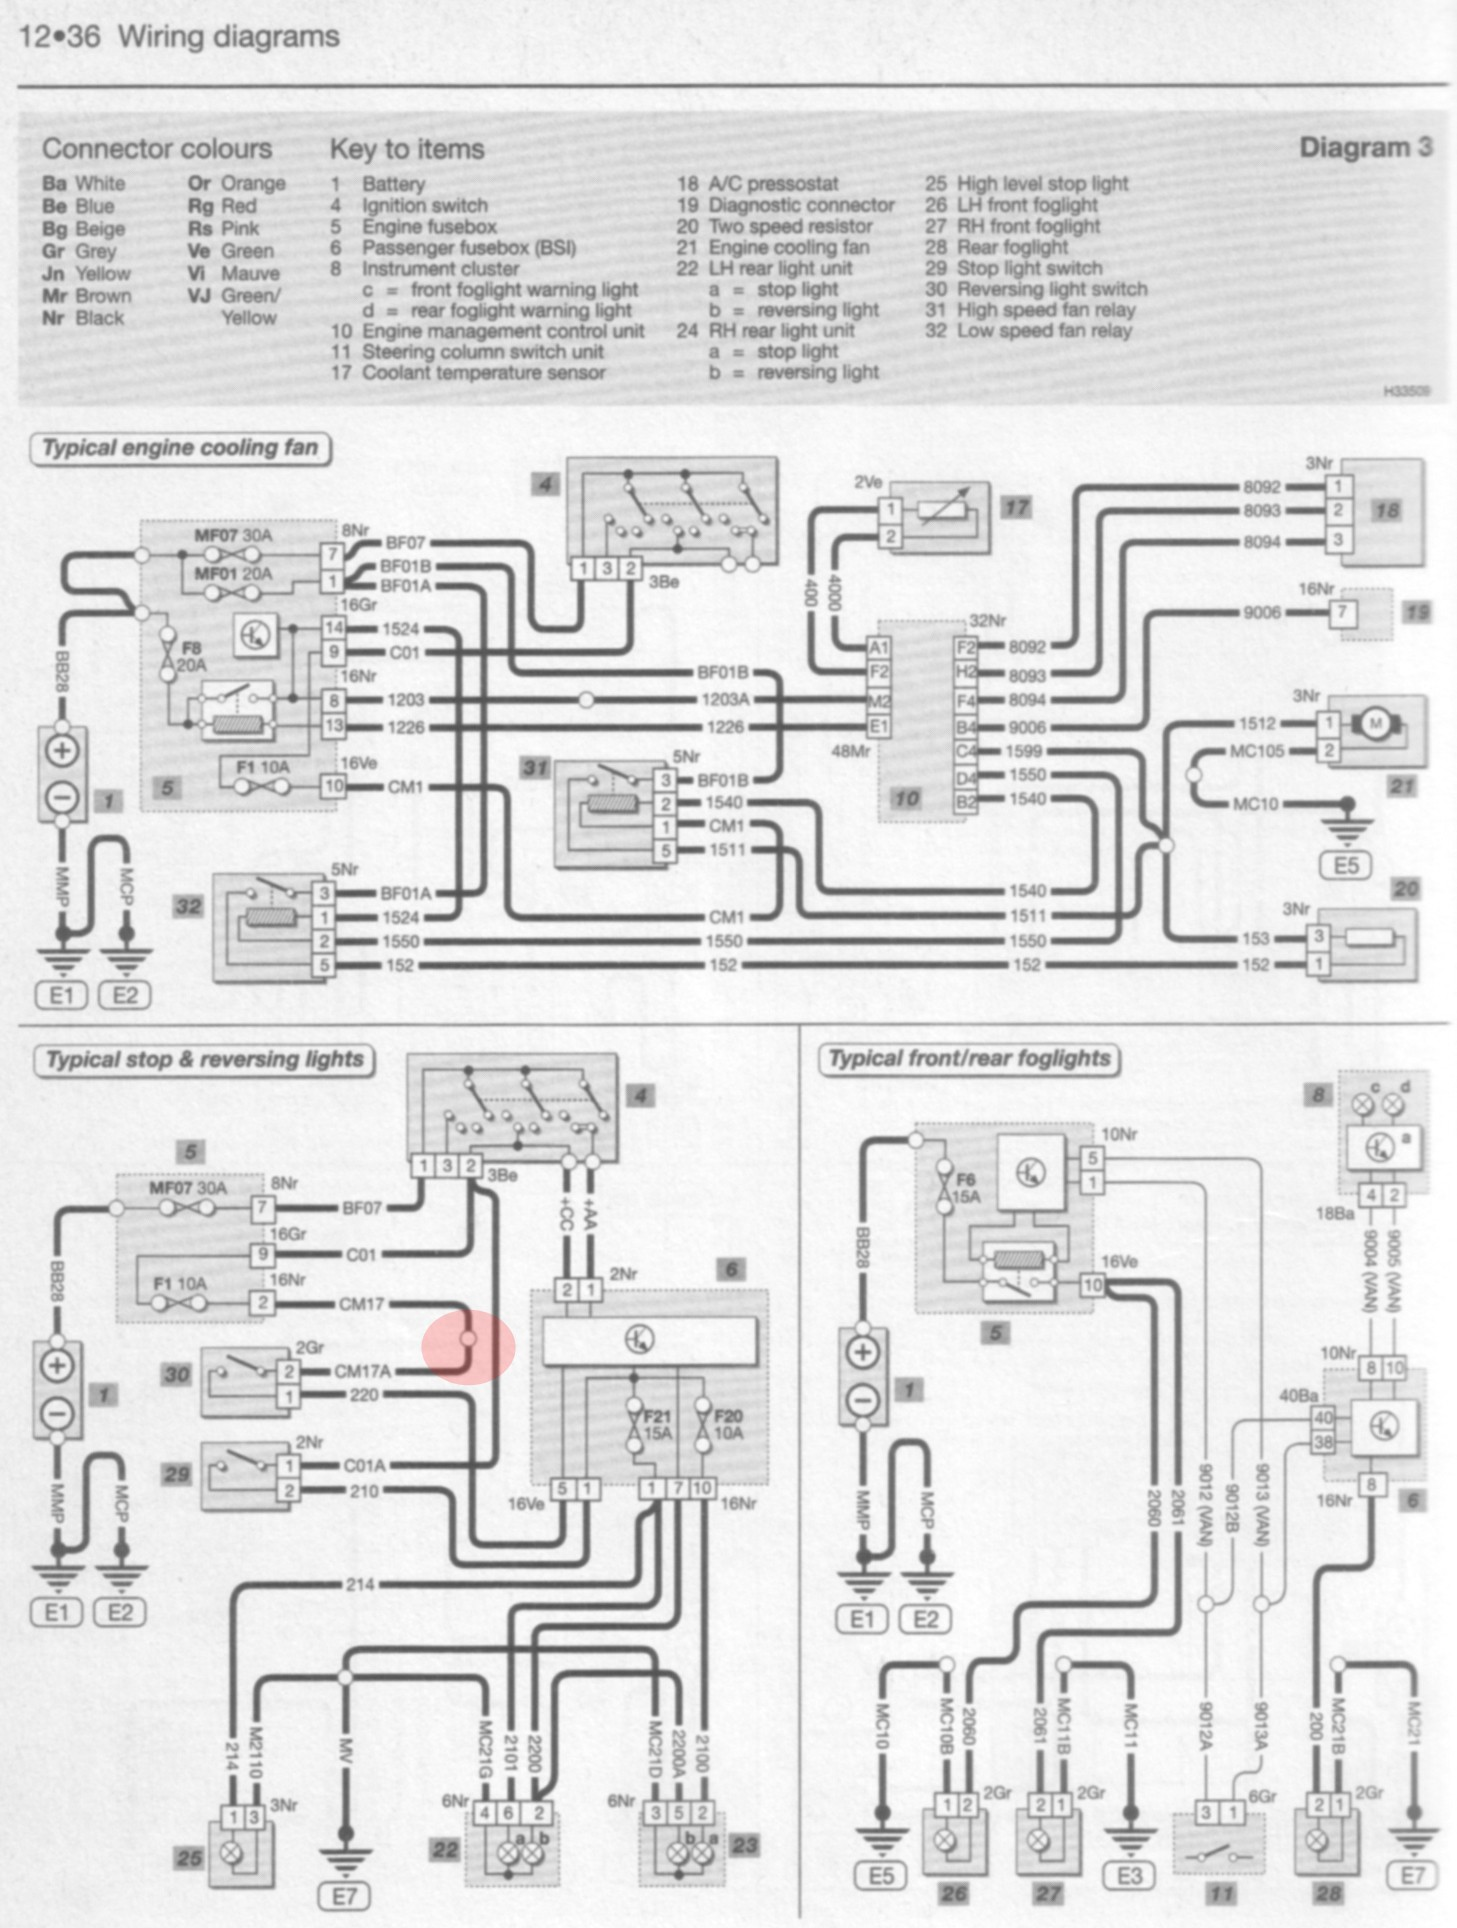 Unique peugeot 206 radio wiring diagram vignette the wire magnox peugeot 206 engine diagram wiring diagram for peugeot 206 stereo cheapraybanclubmaster Choice Image